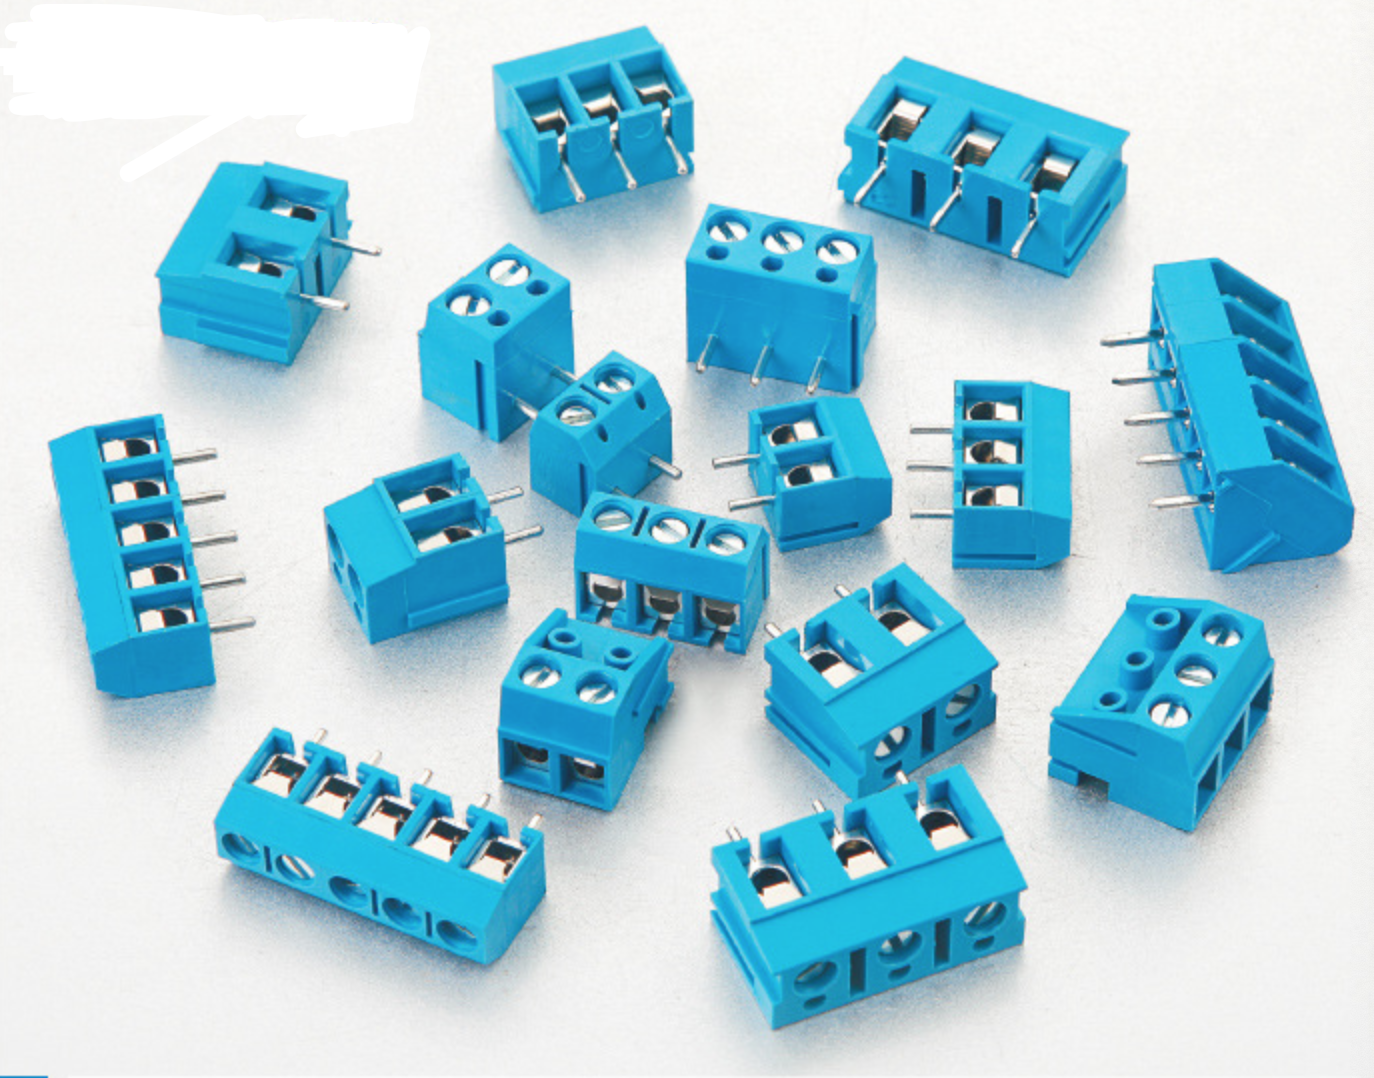 PCB Terminal Block Connector Male Female Straight Angle Pin Factory Price Spring loaded Screw Type Connector Green Blue Color